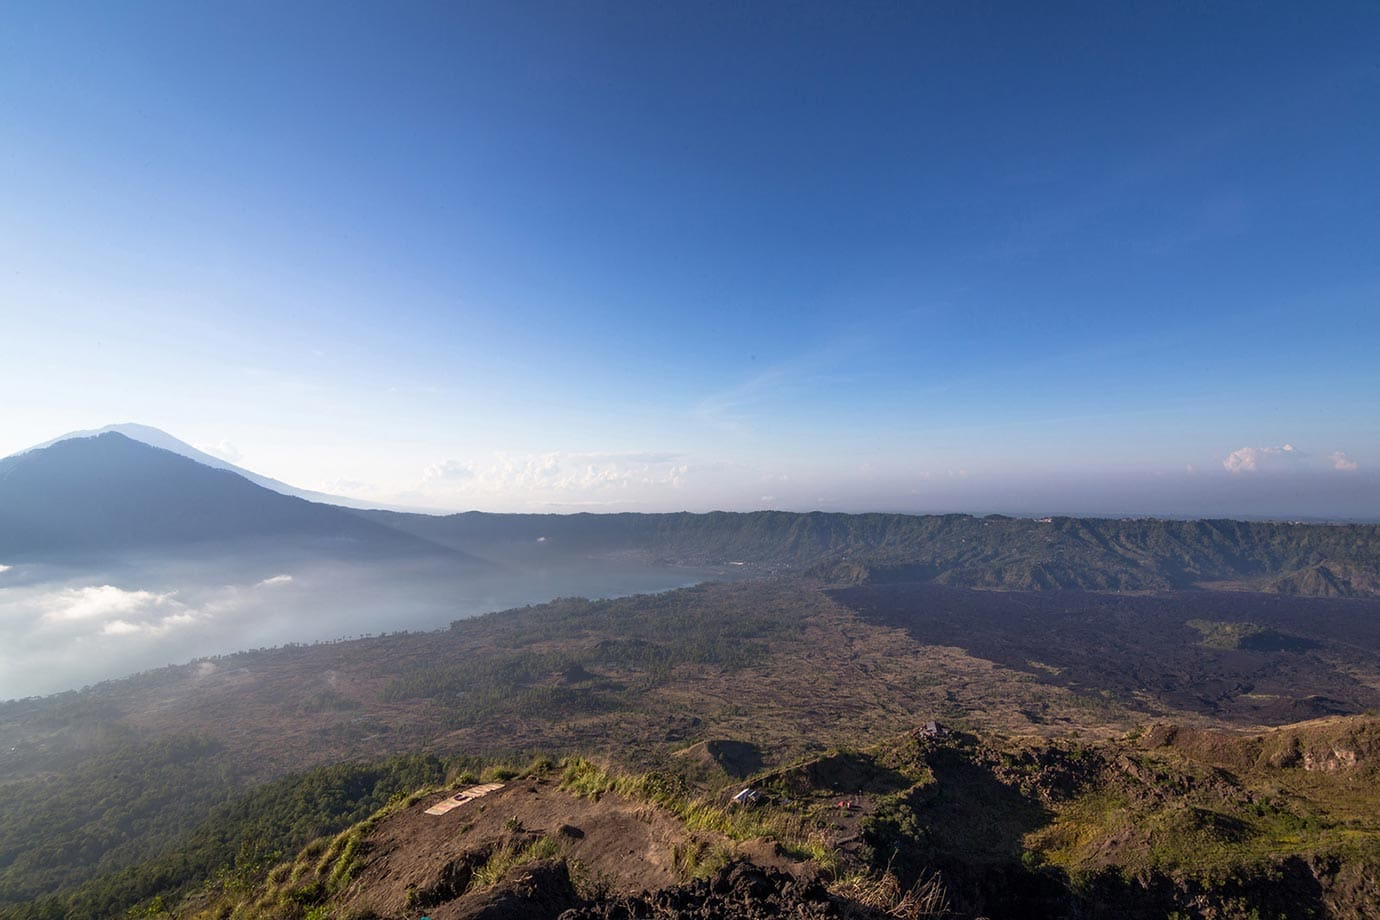 Views from Mount Batur